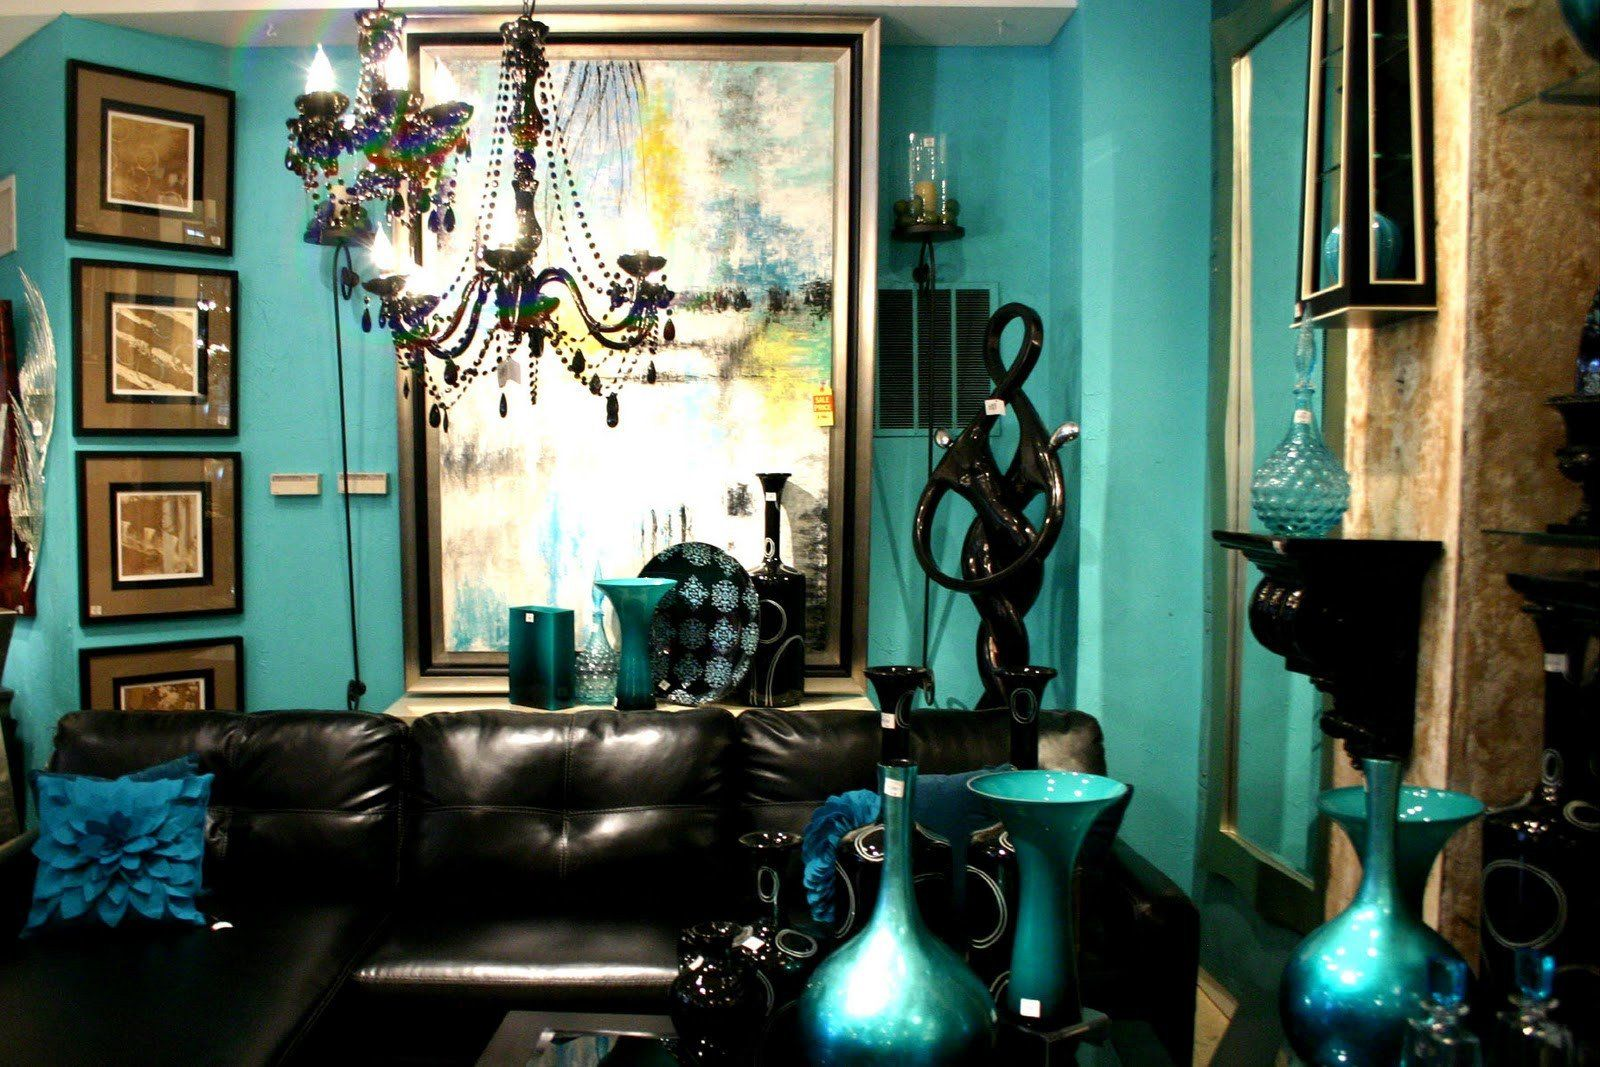 Teal Decor For Living Room Luxury Cool Teal Home Decor For Spring And Summer Black And Gold Living Room Teal Home Decor Teal Living Rooms #teal #and #black #living #room #ideas